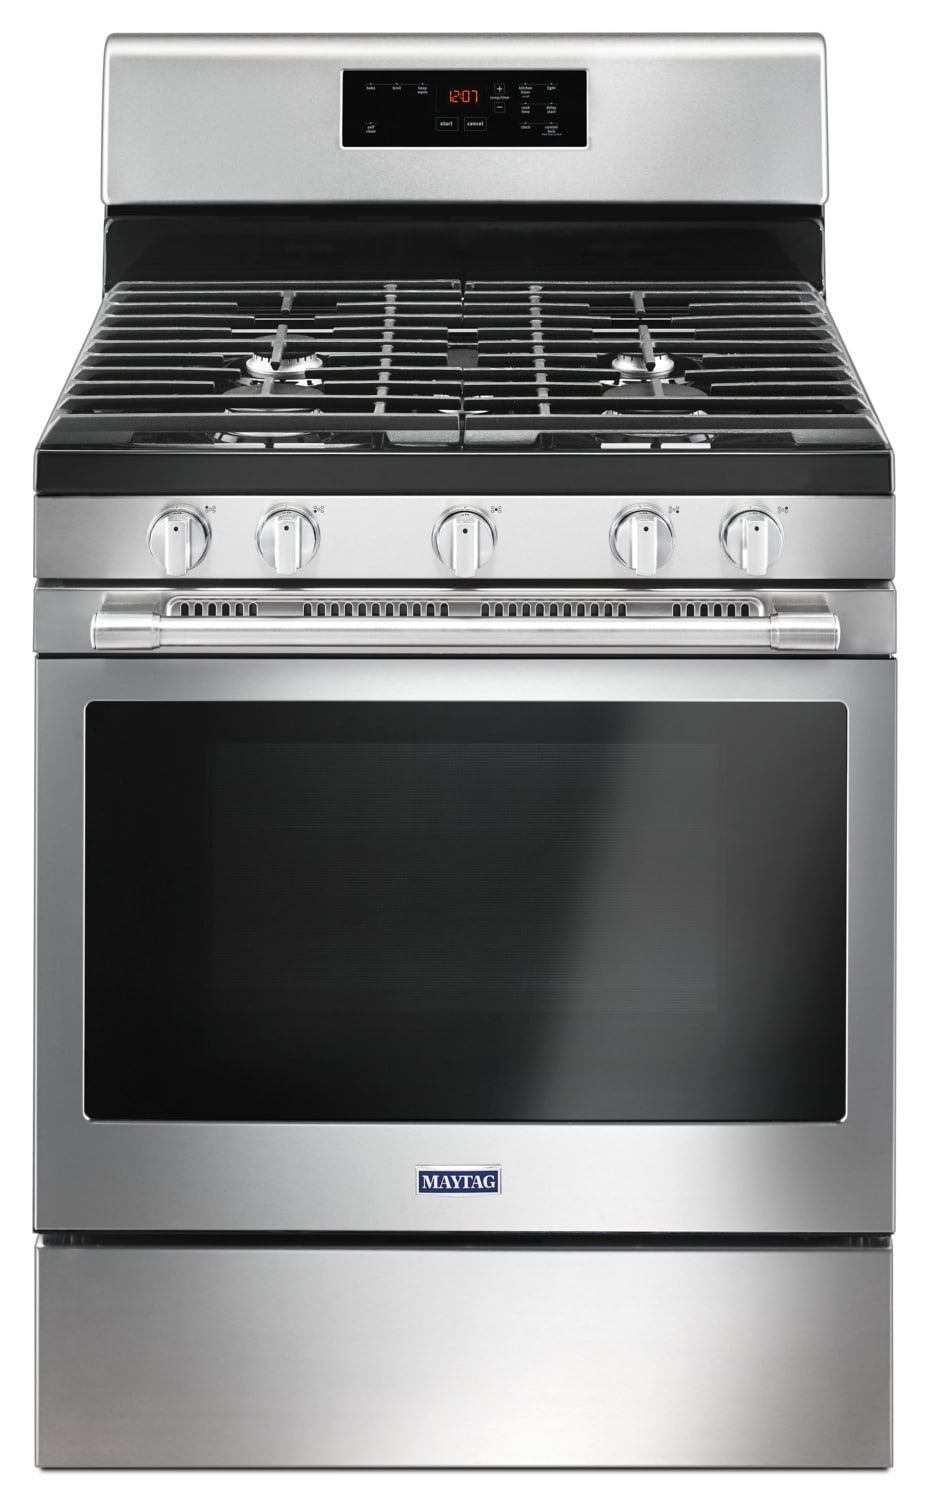 Maytag Stainless Steel Freestanding Gas Range 5 0 Cu Ft